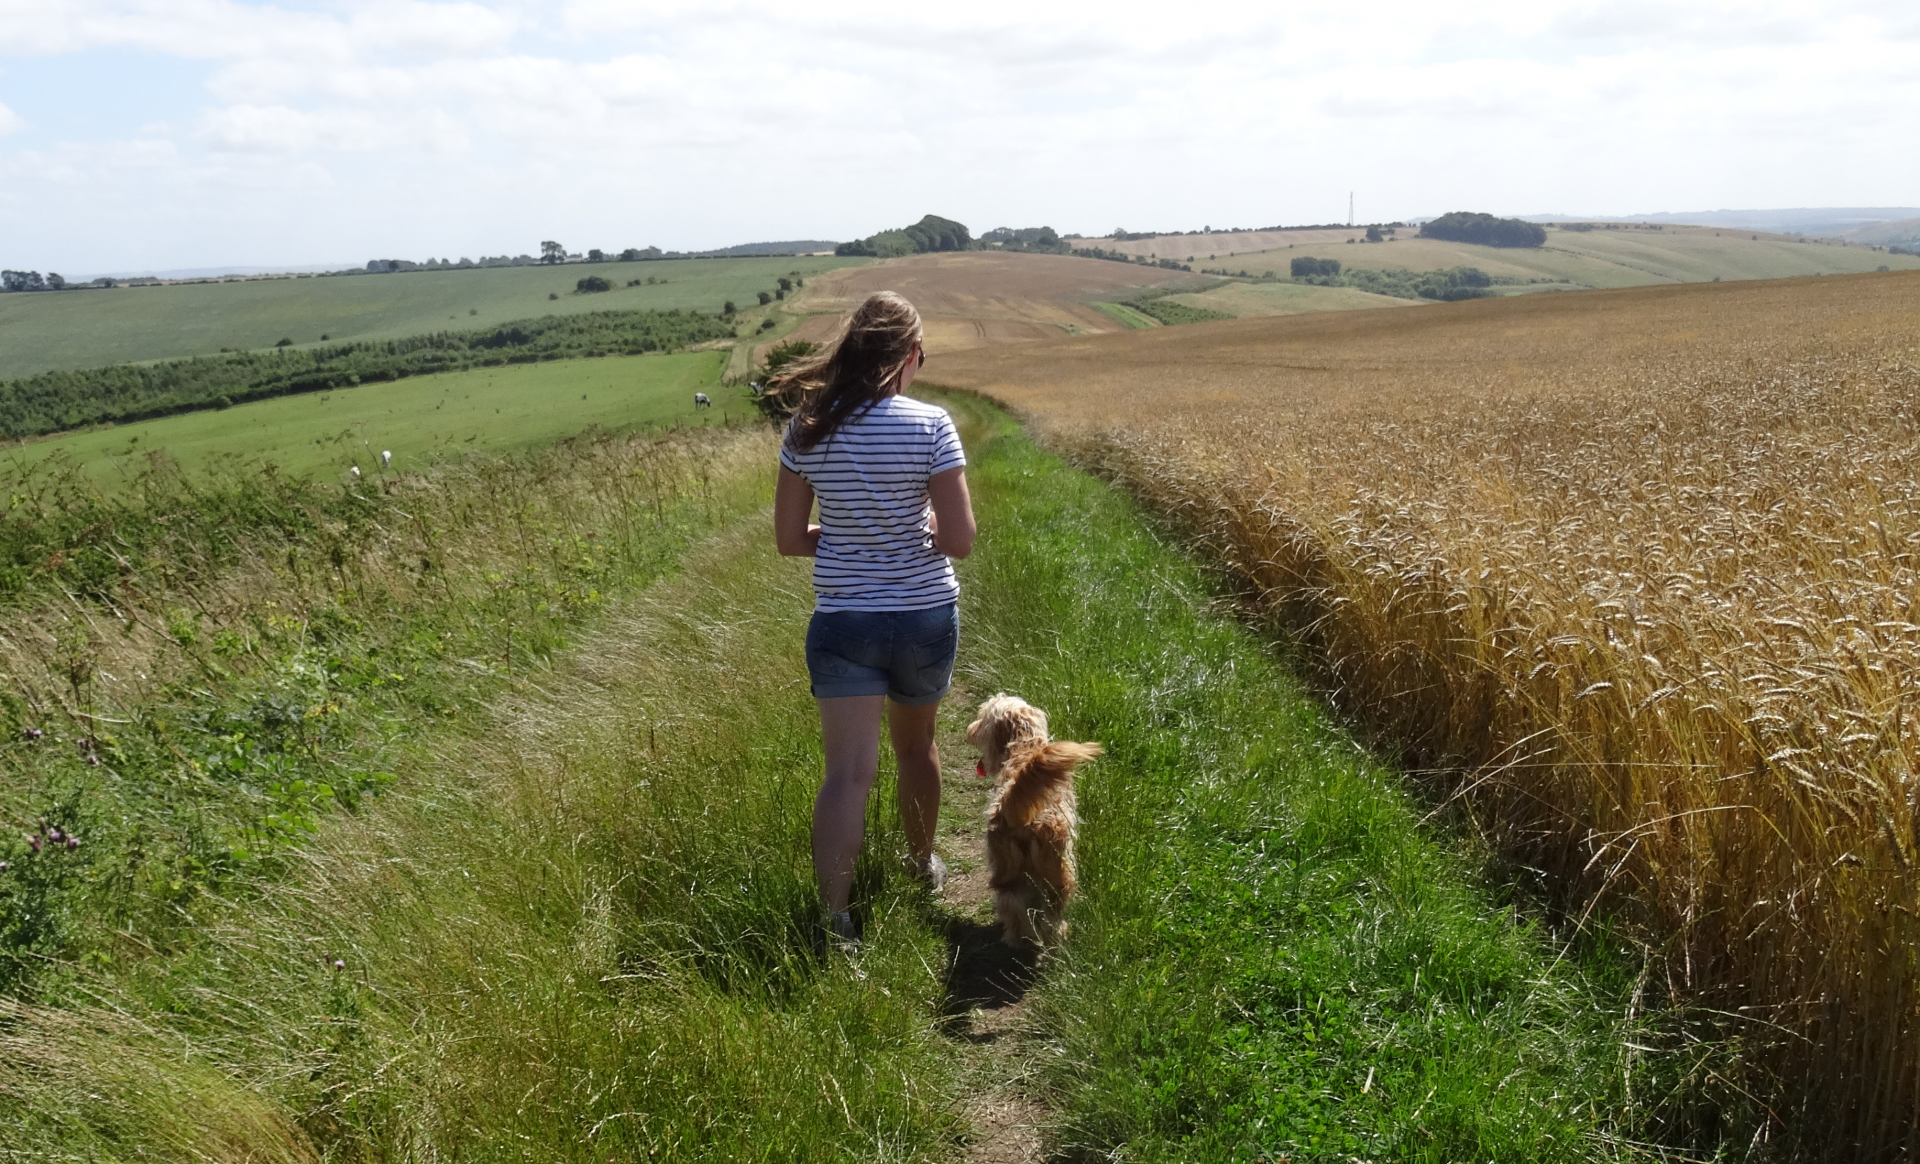 Green open field with lady and dog walking away